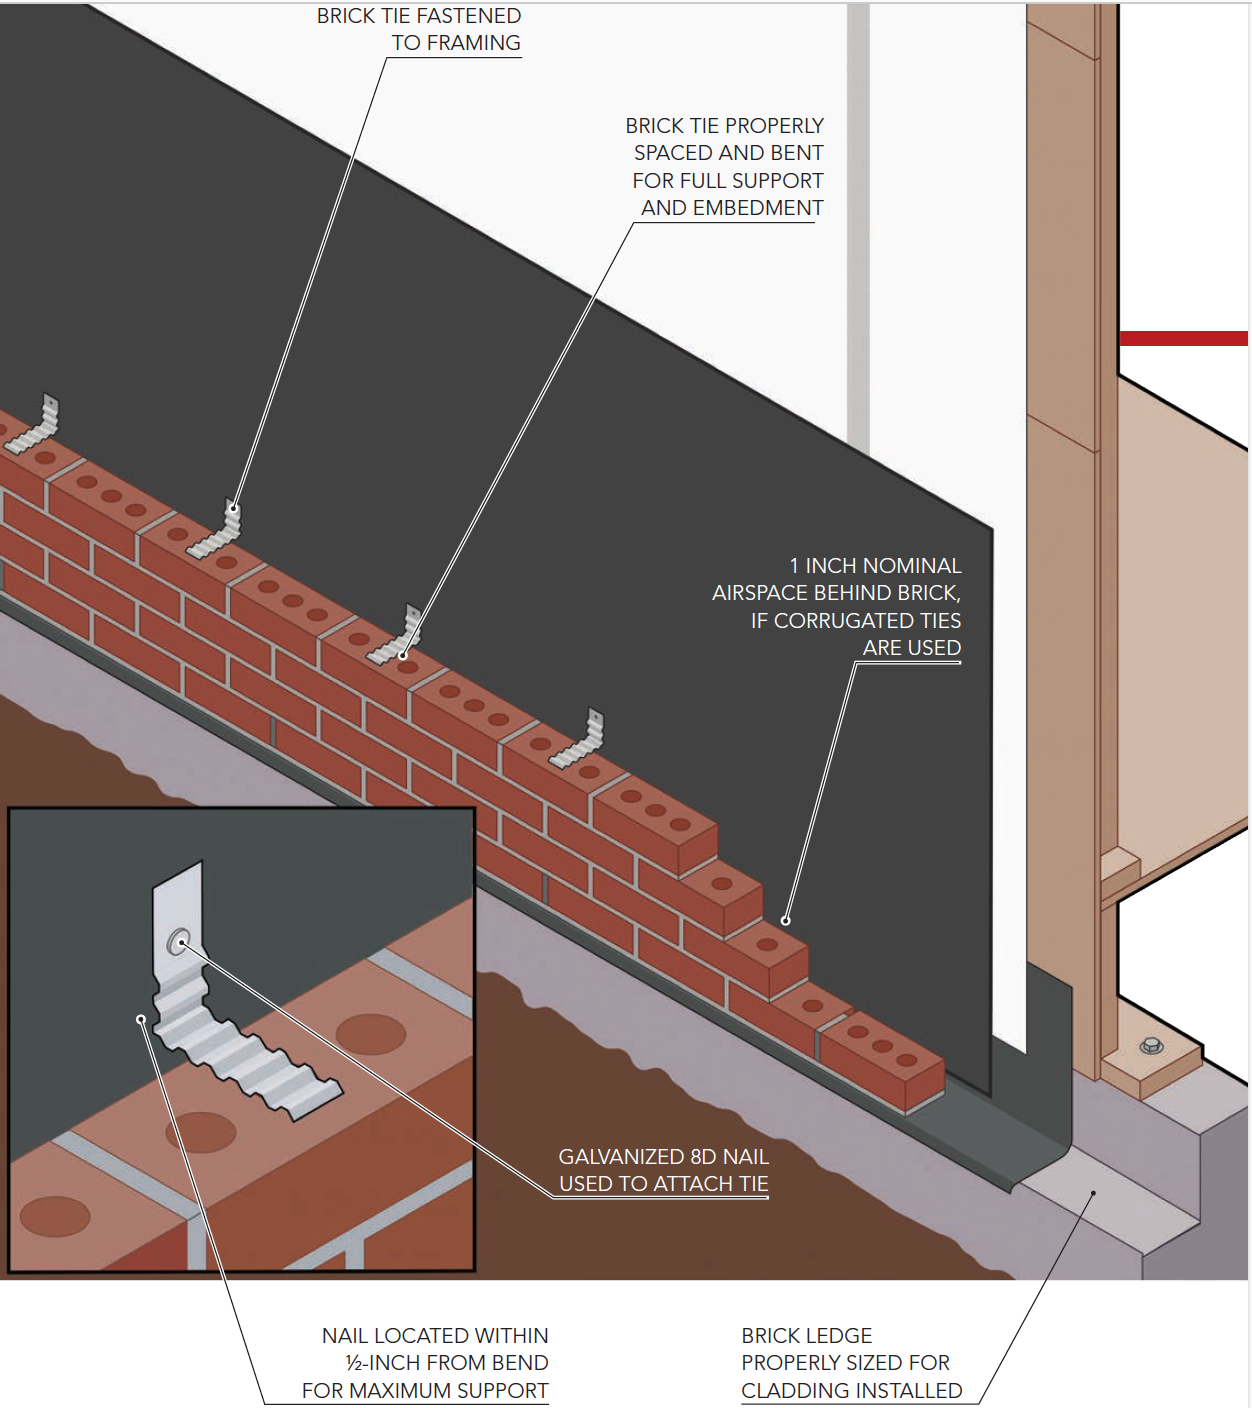 Getting Brick Ties Right Professional Builder